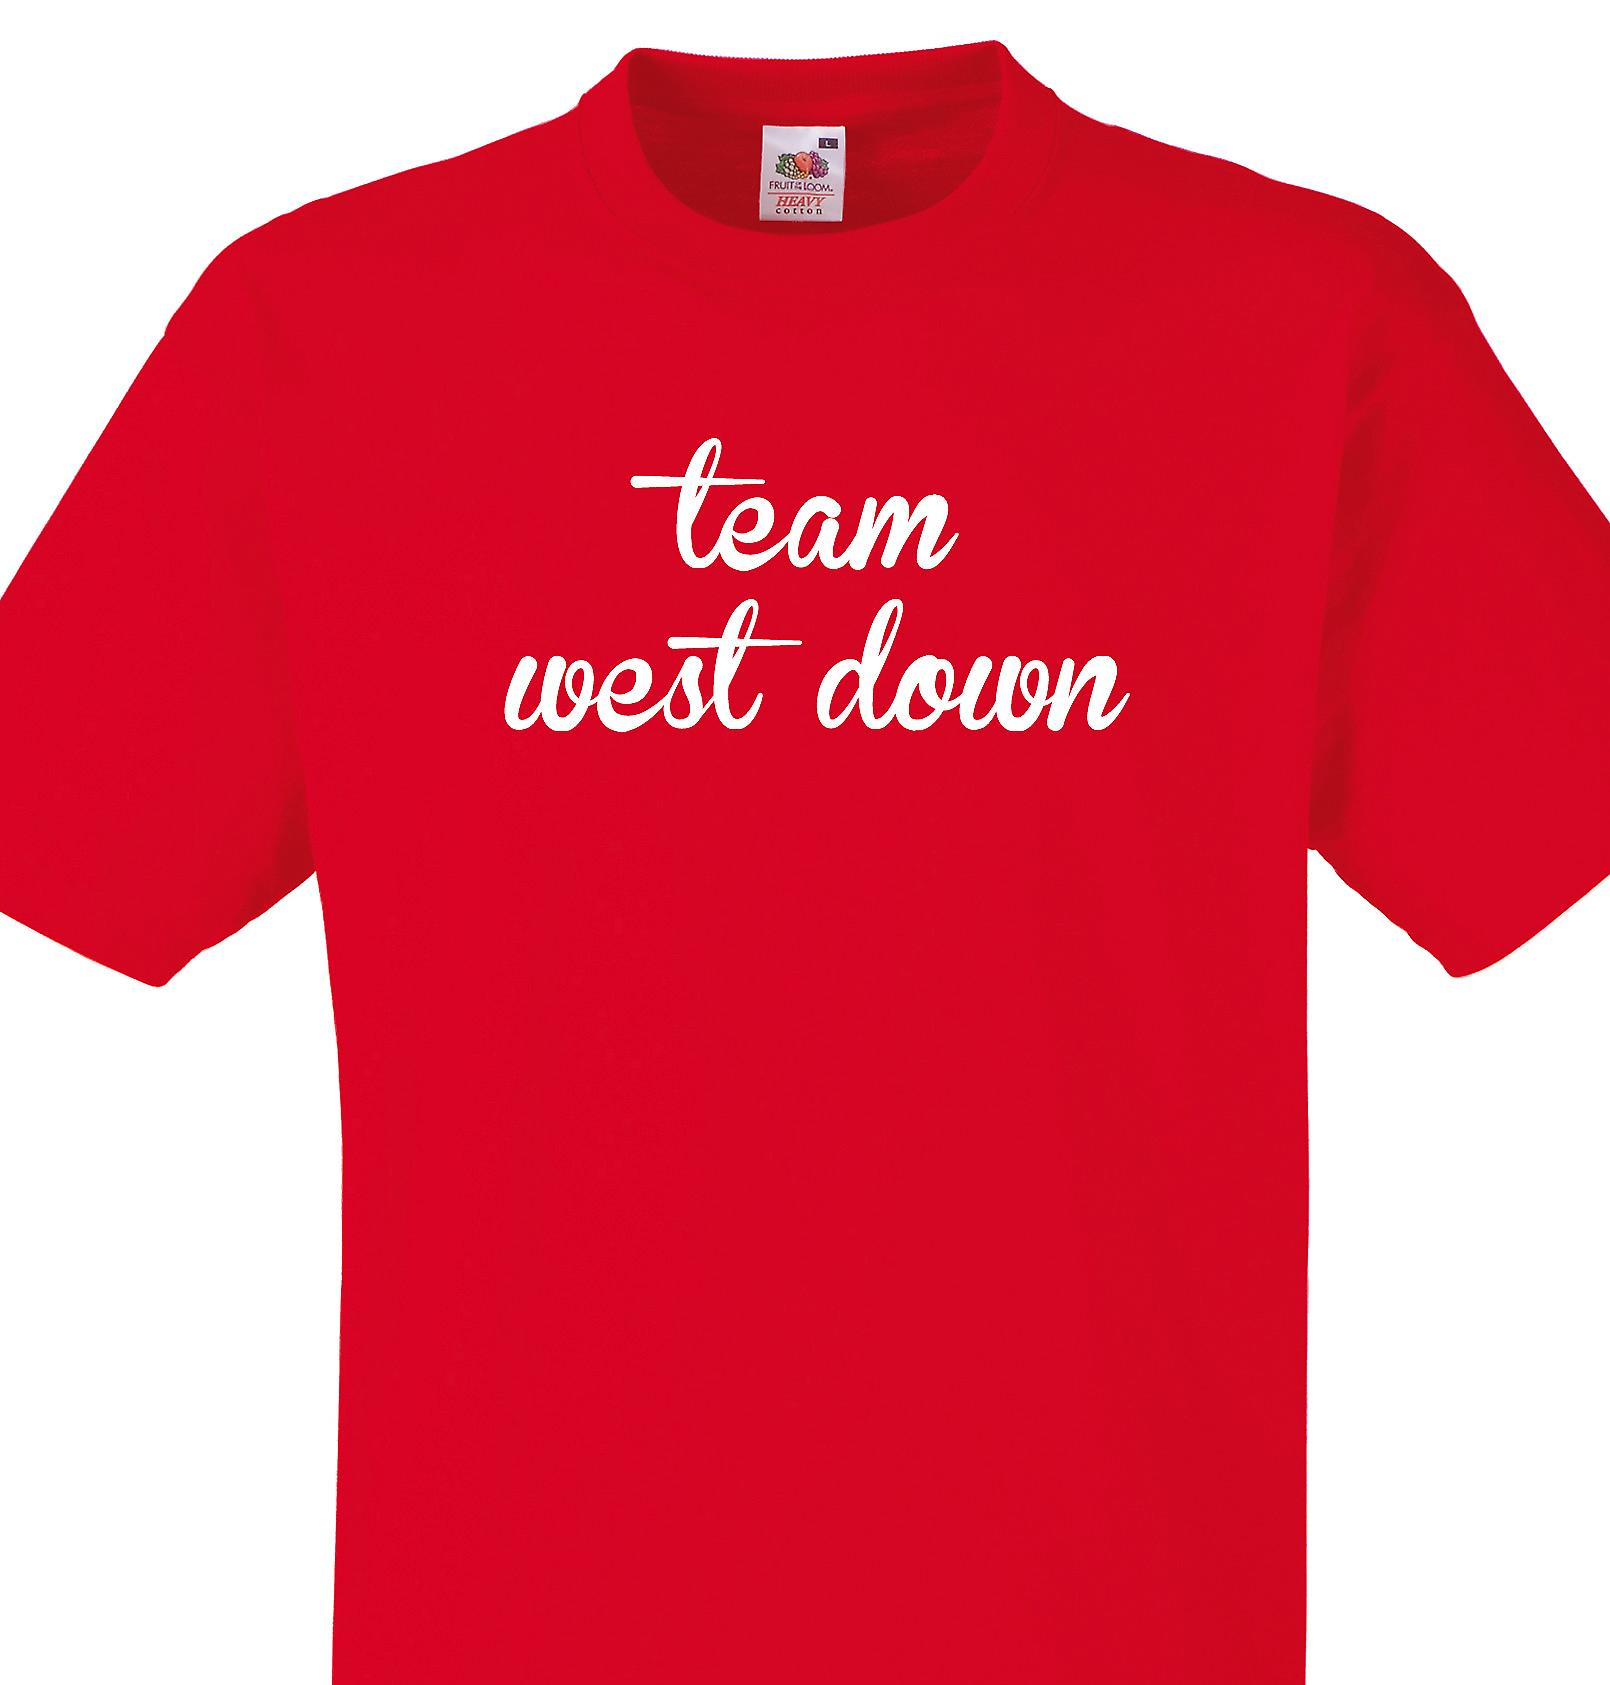 Team West down Red T shirt